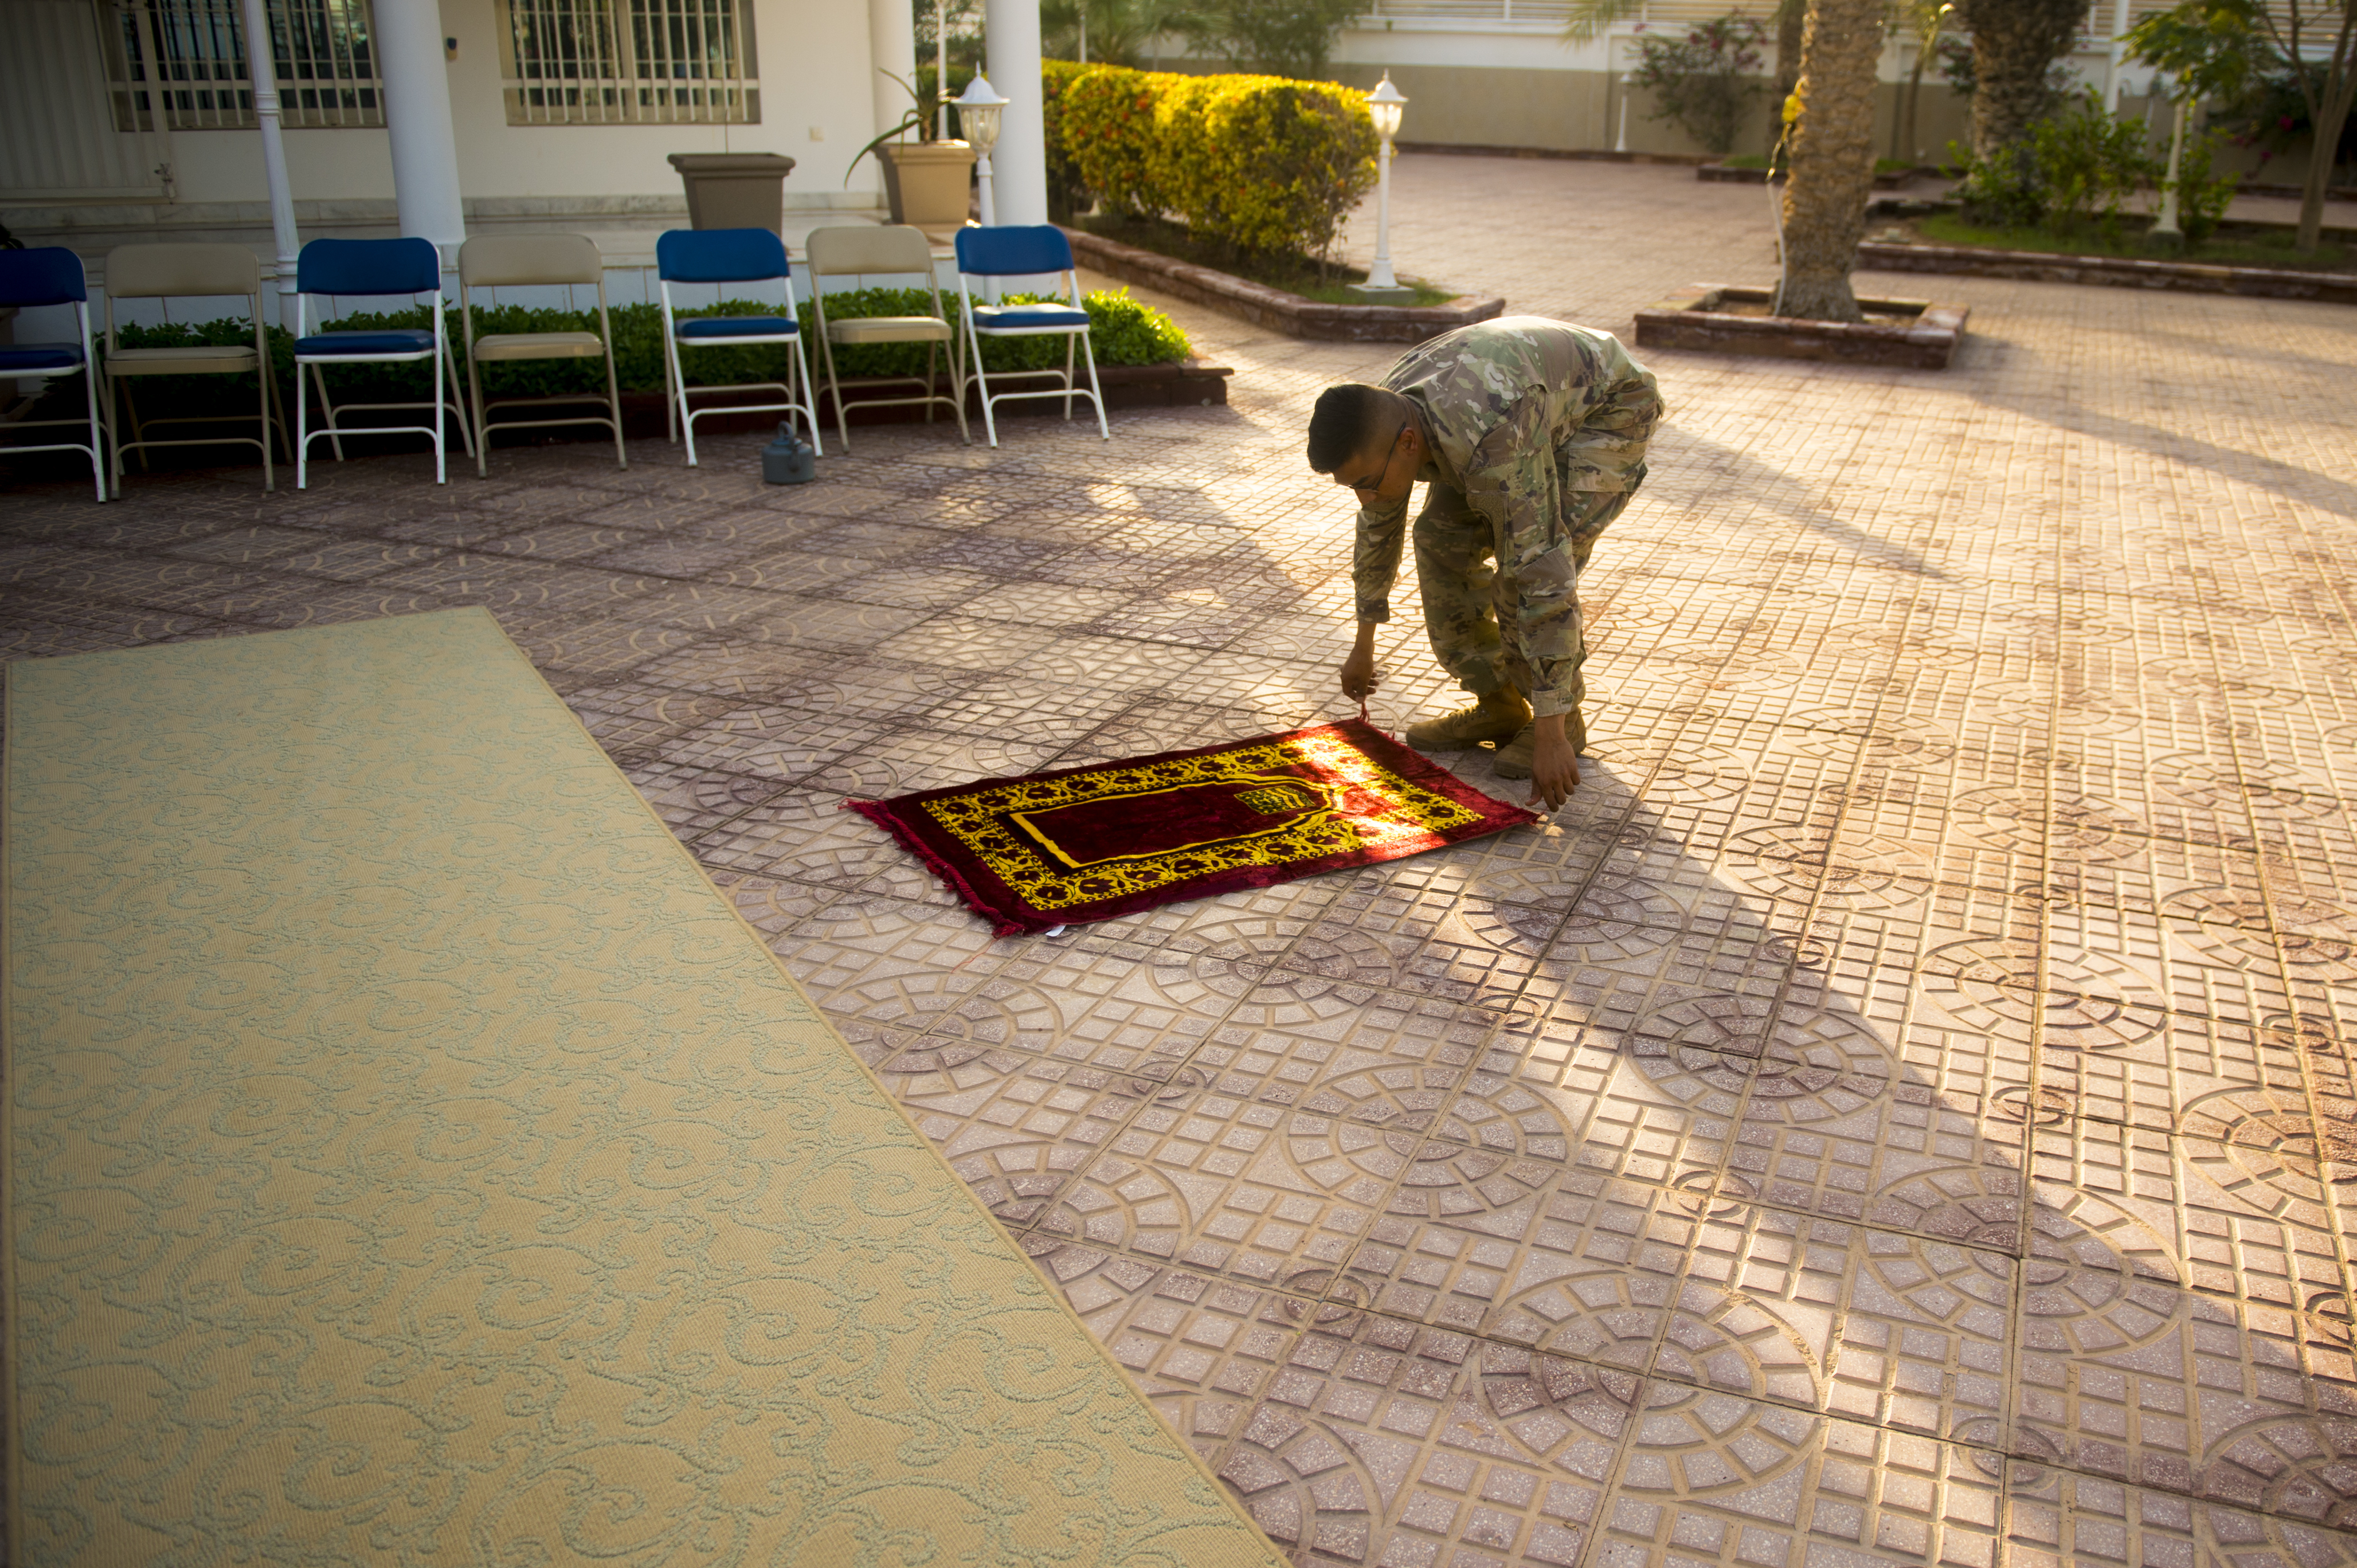 U.S. Army Specialist Ahmed Azhar, an infantryman from the 10th Mountain Division, prepares a prayer rug in during an Iftar celebration at the U.S. Ambassador to the Republic of Djibouti's house in Djibouti, May 21, 2018. The U.S. Ambassador to the Republic of Djibouti, Larry André, opened his home to celebrate two Iftars, one run by the Defense Attaché Office for senior Diboutian Military and security leaders, the second for senior government, diplomatic, and business leaders (U.S. Air Force photo by Senior Airman Scott Jackson)